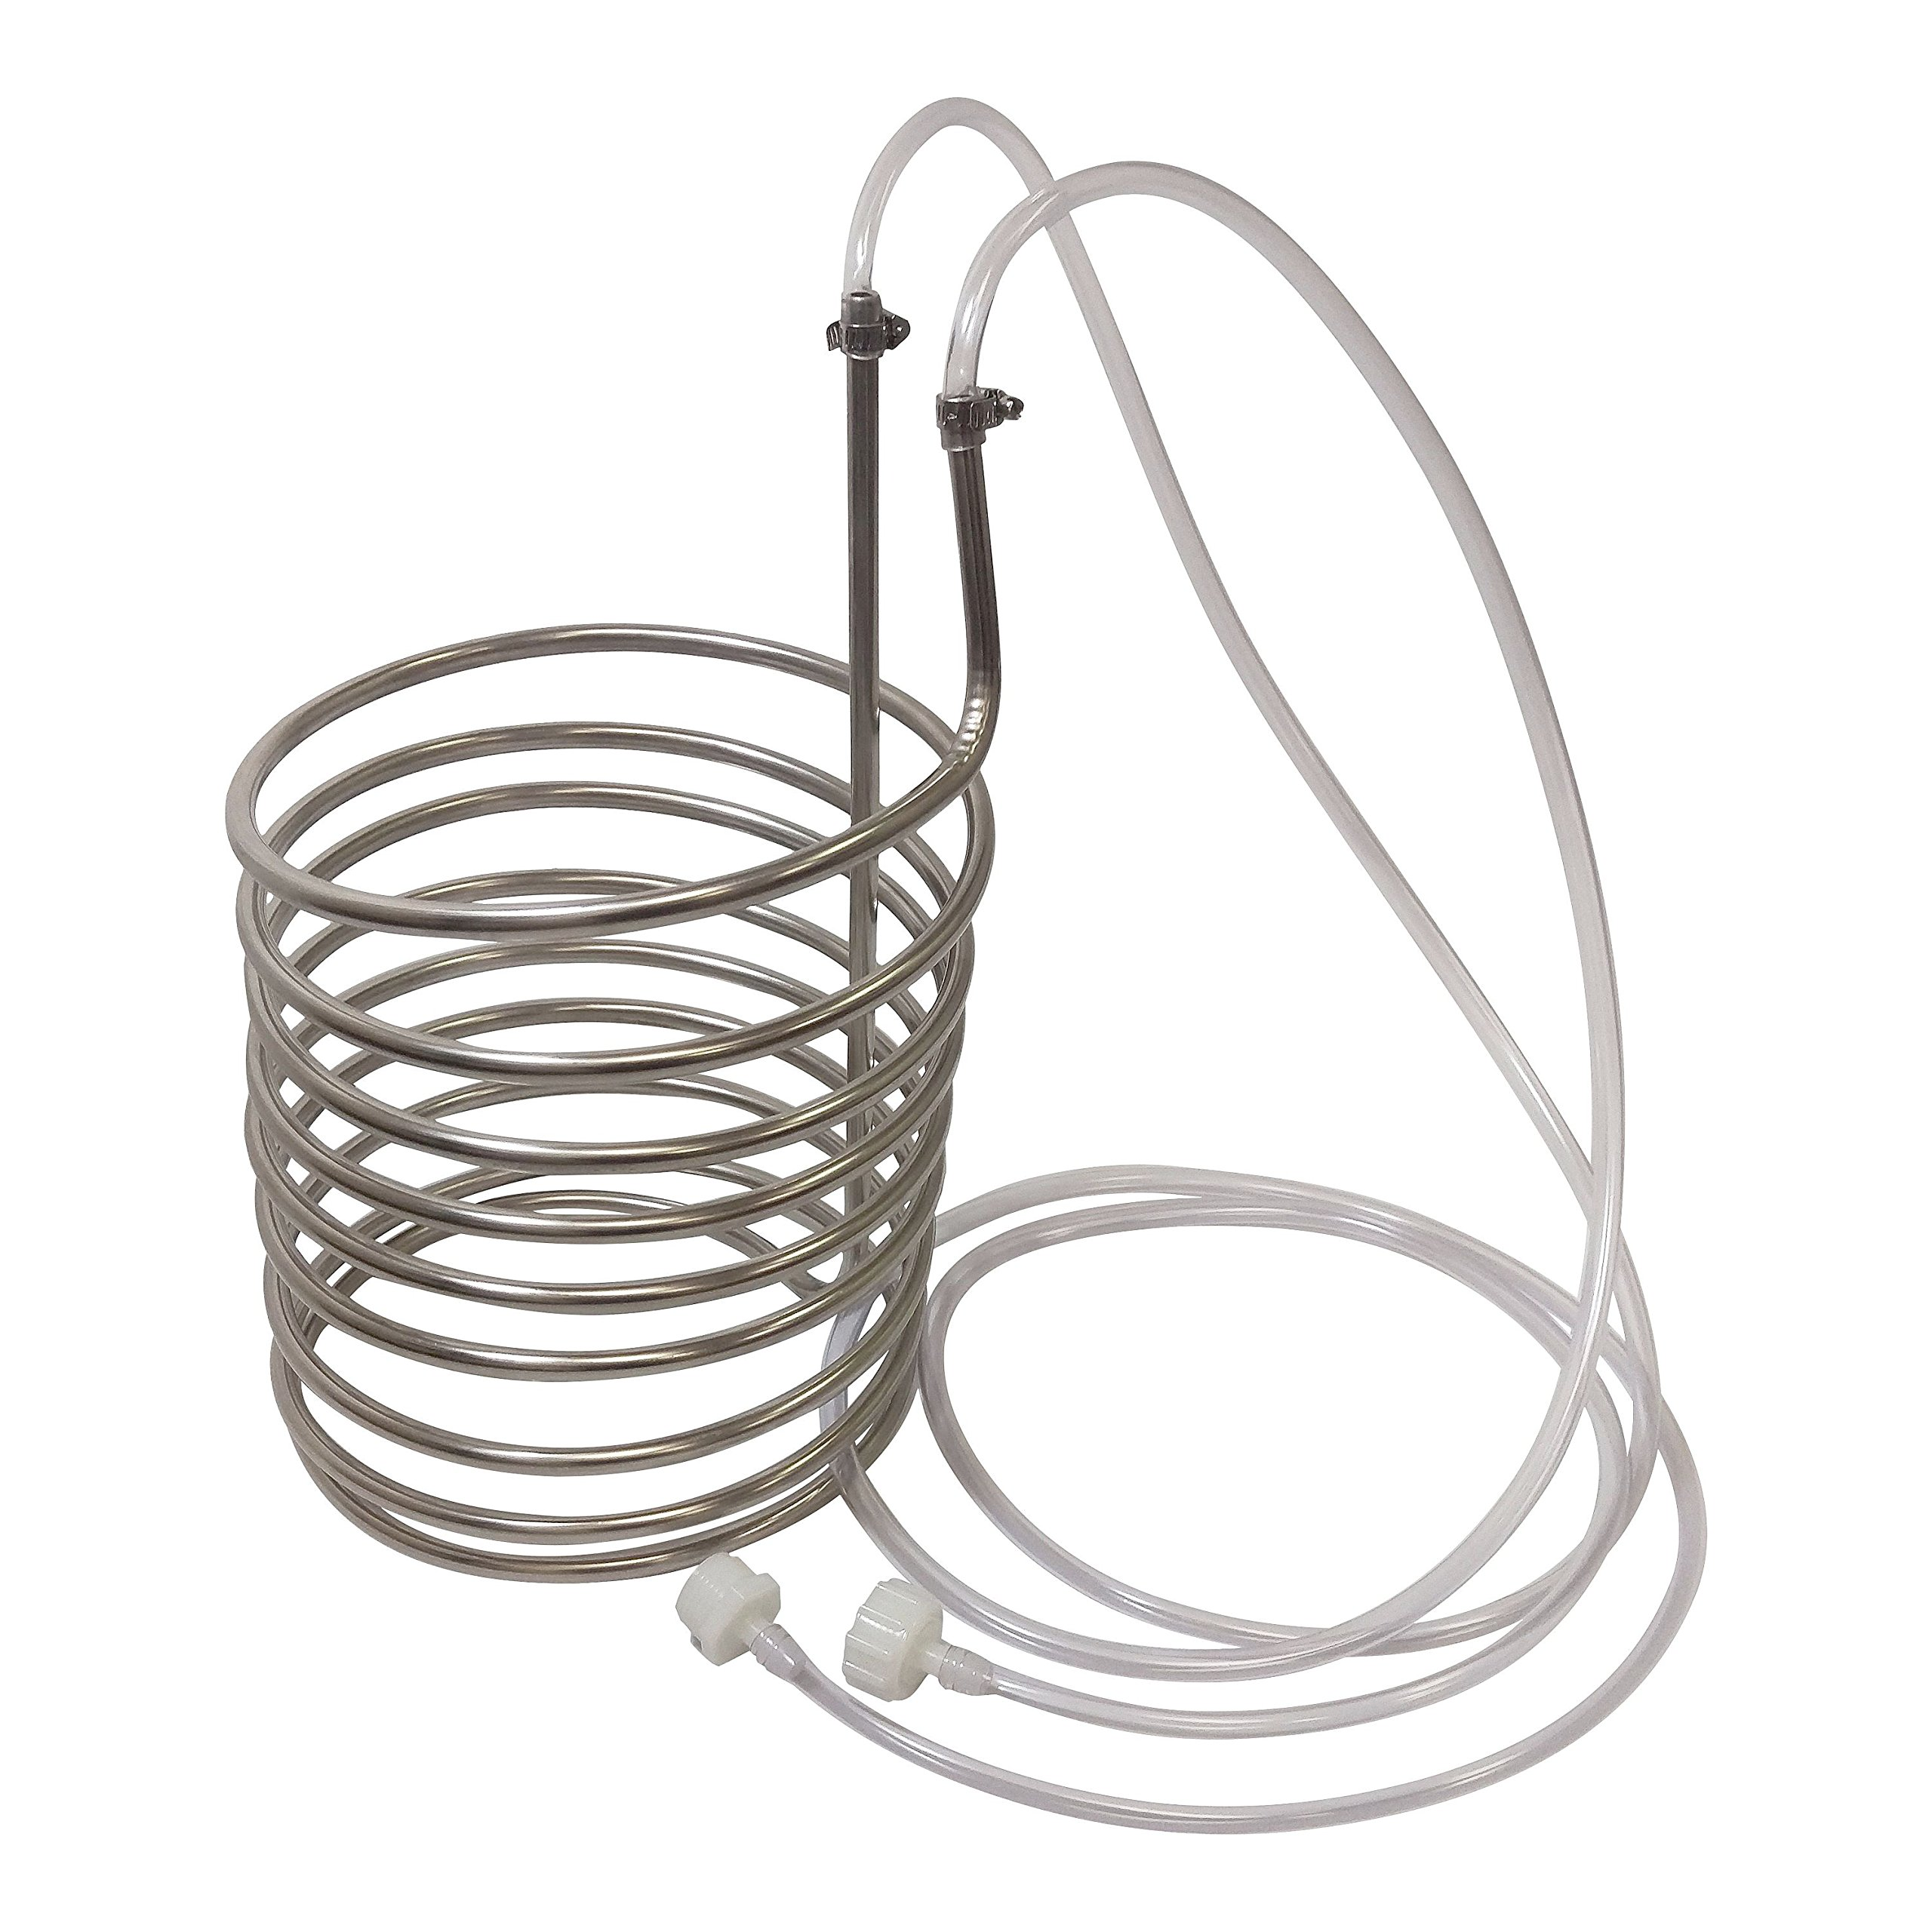 NY Brew Supply Stainless Steel Wort Chiller/Pre-Chiller, Silver by NY Brew Supply